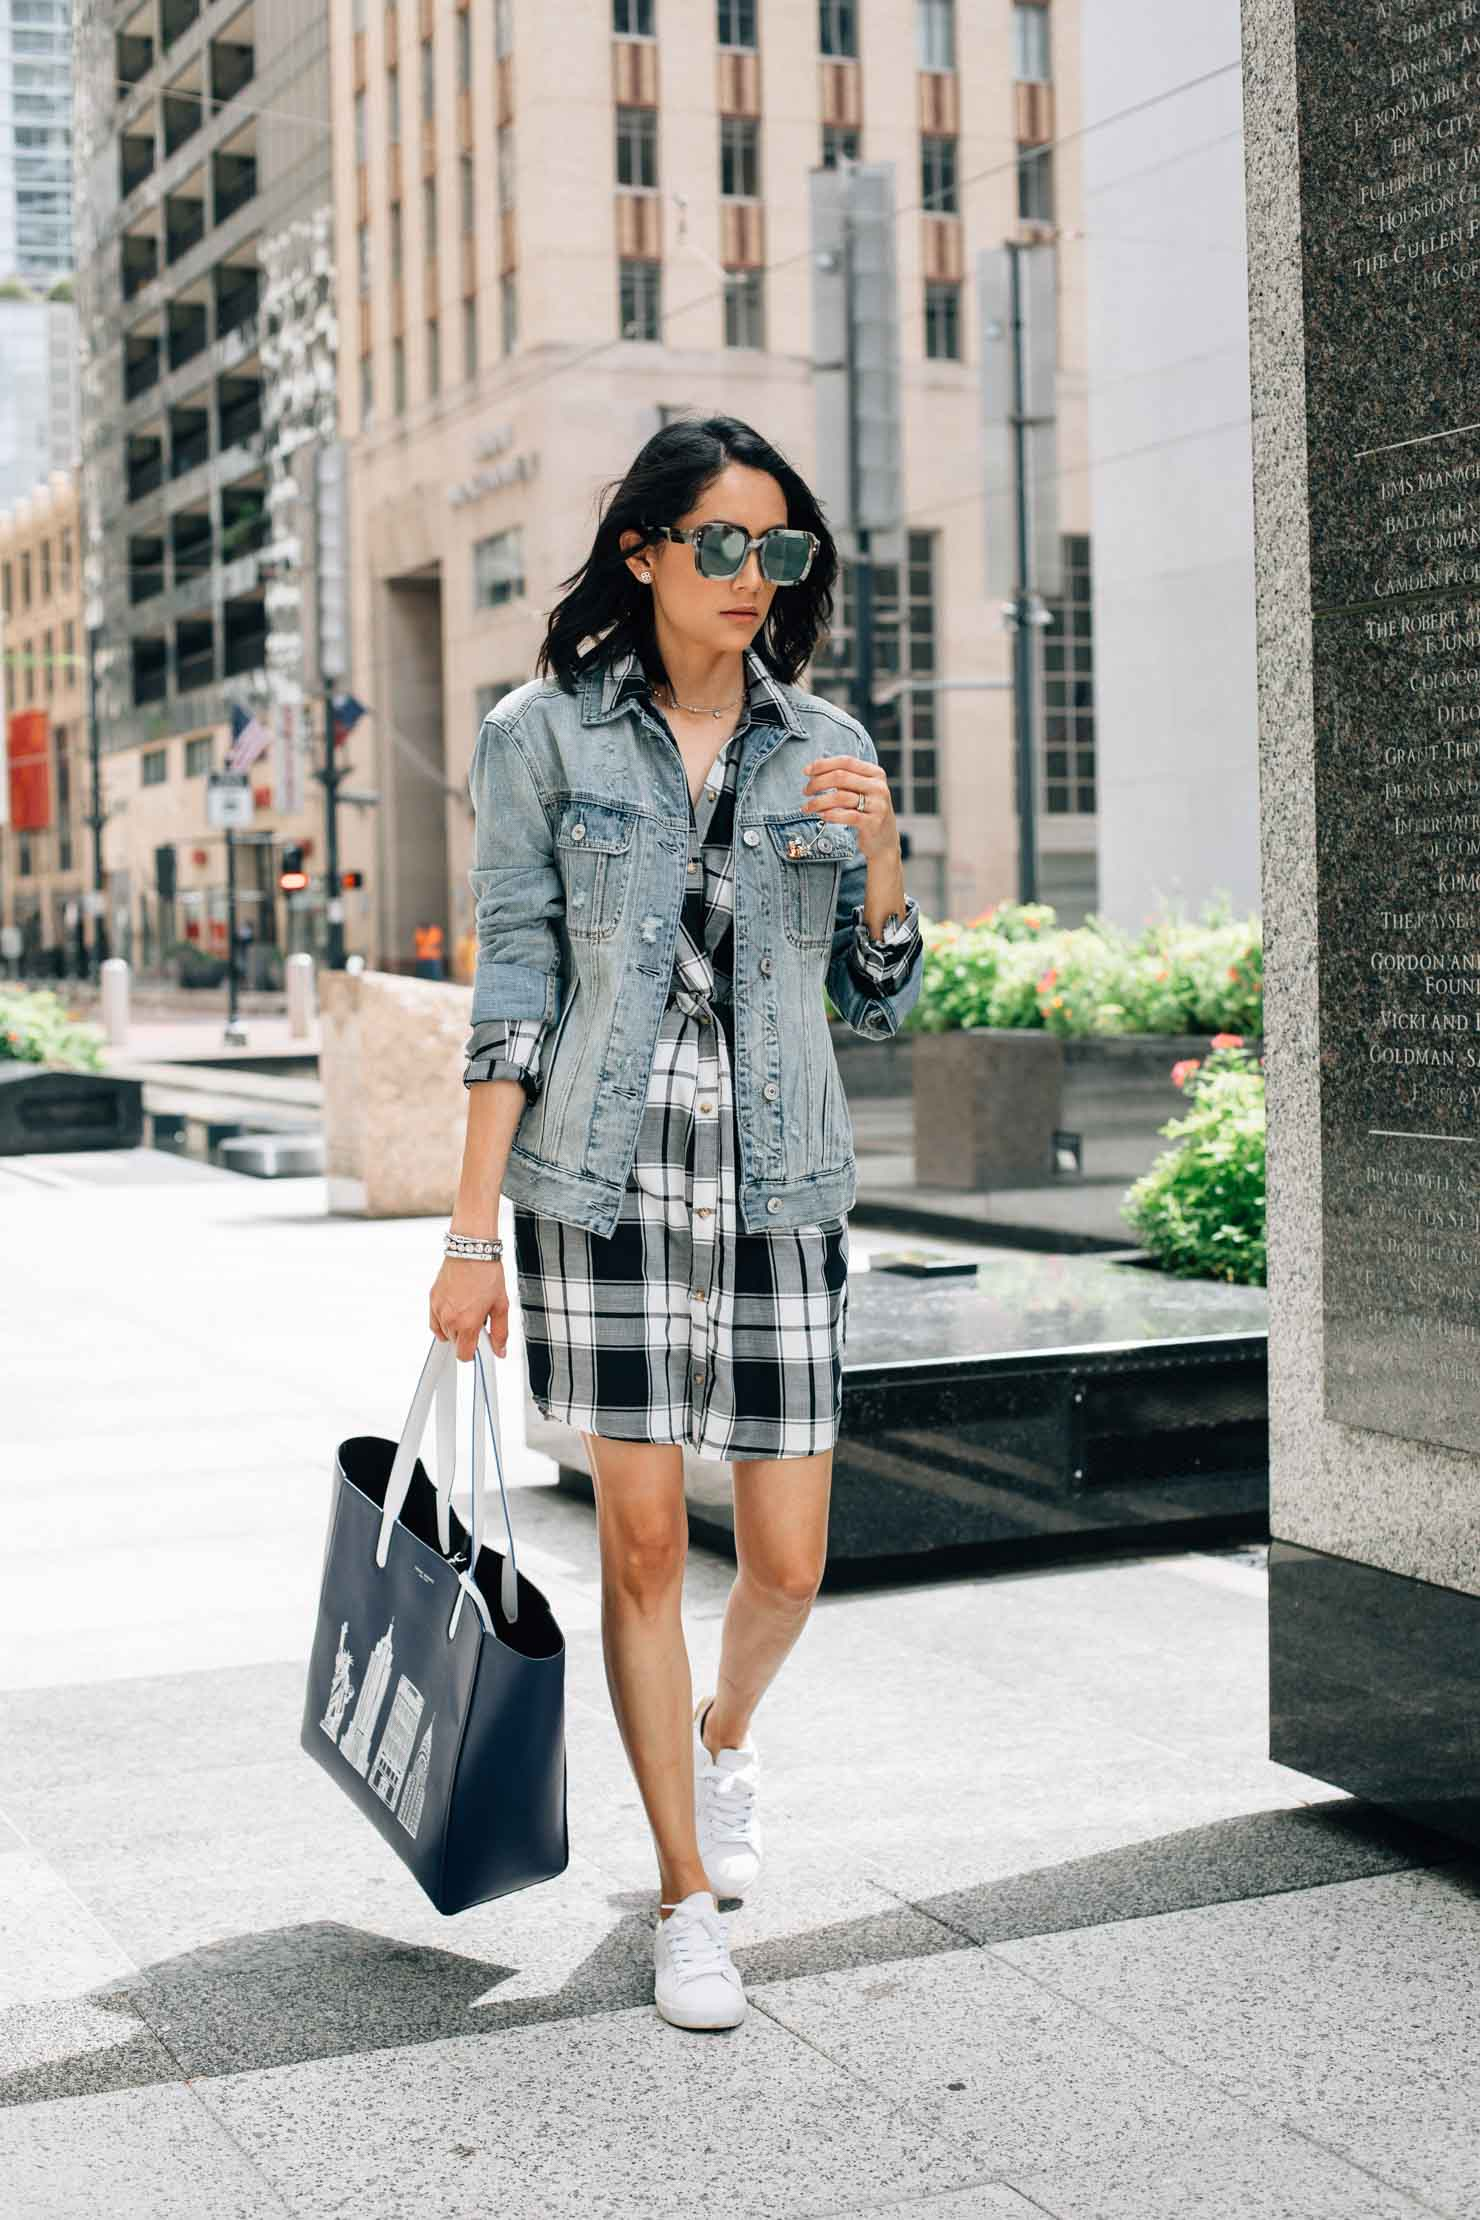 Lilly Beltran styles a gingham dress with an oversized denim jacket for a laid back fall look